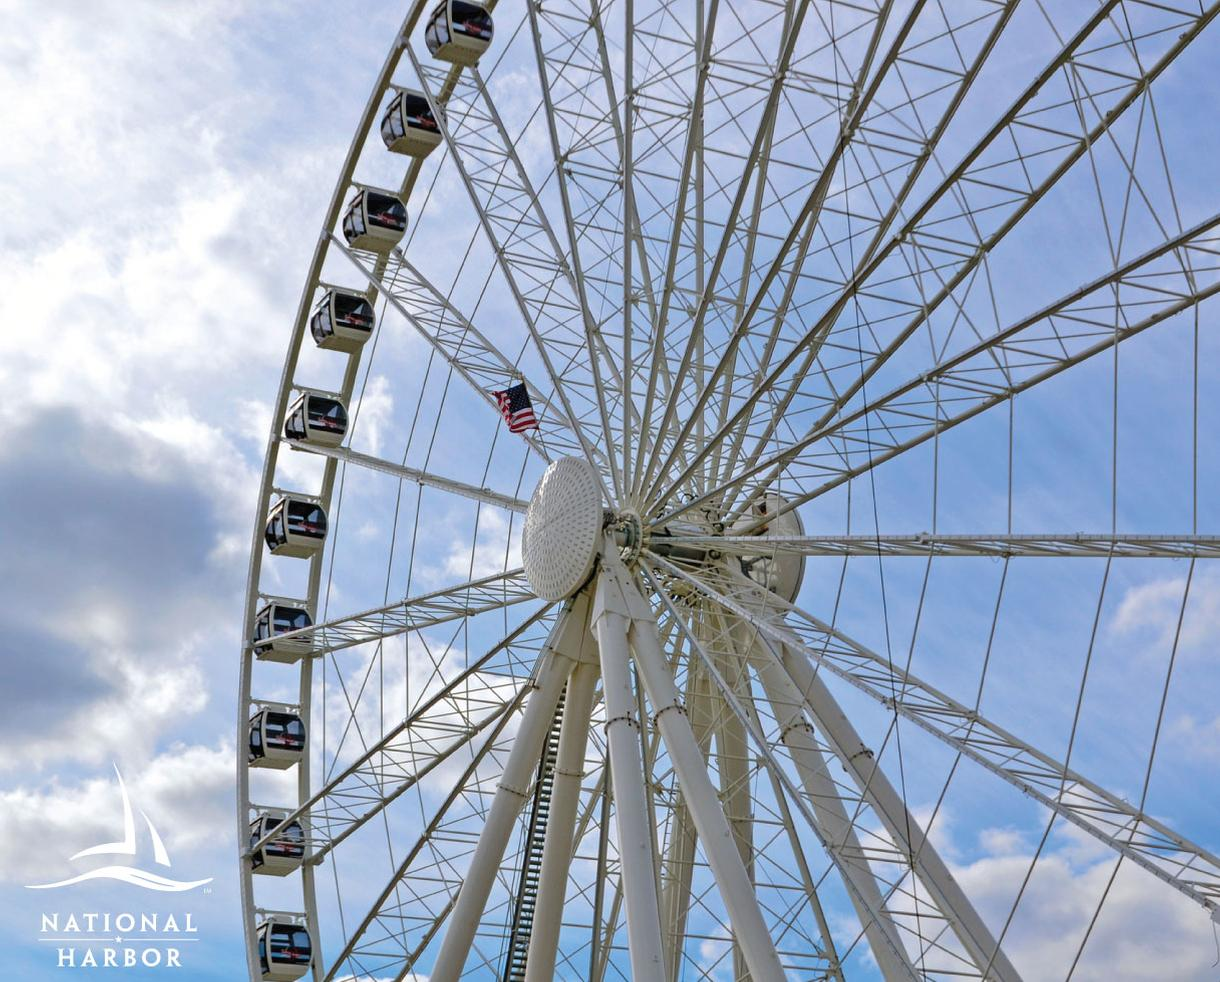 Capital Wheel/Carousel at National Harbor Family Package or Date Night Experience